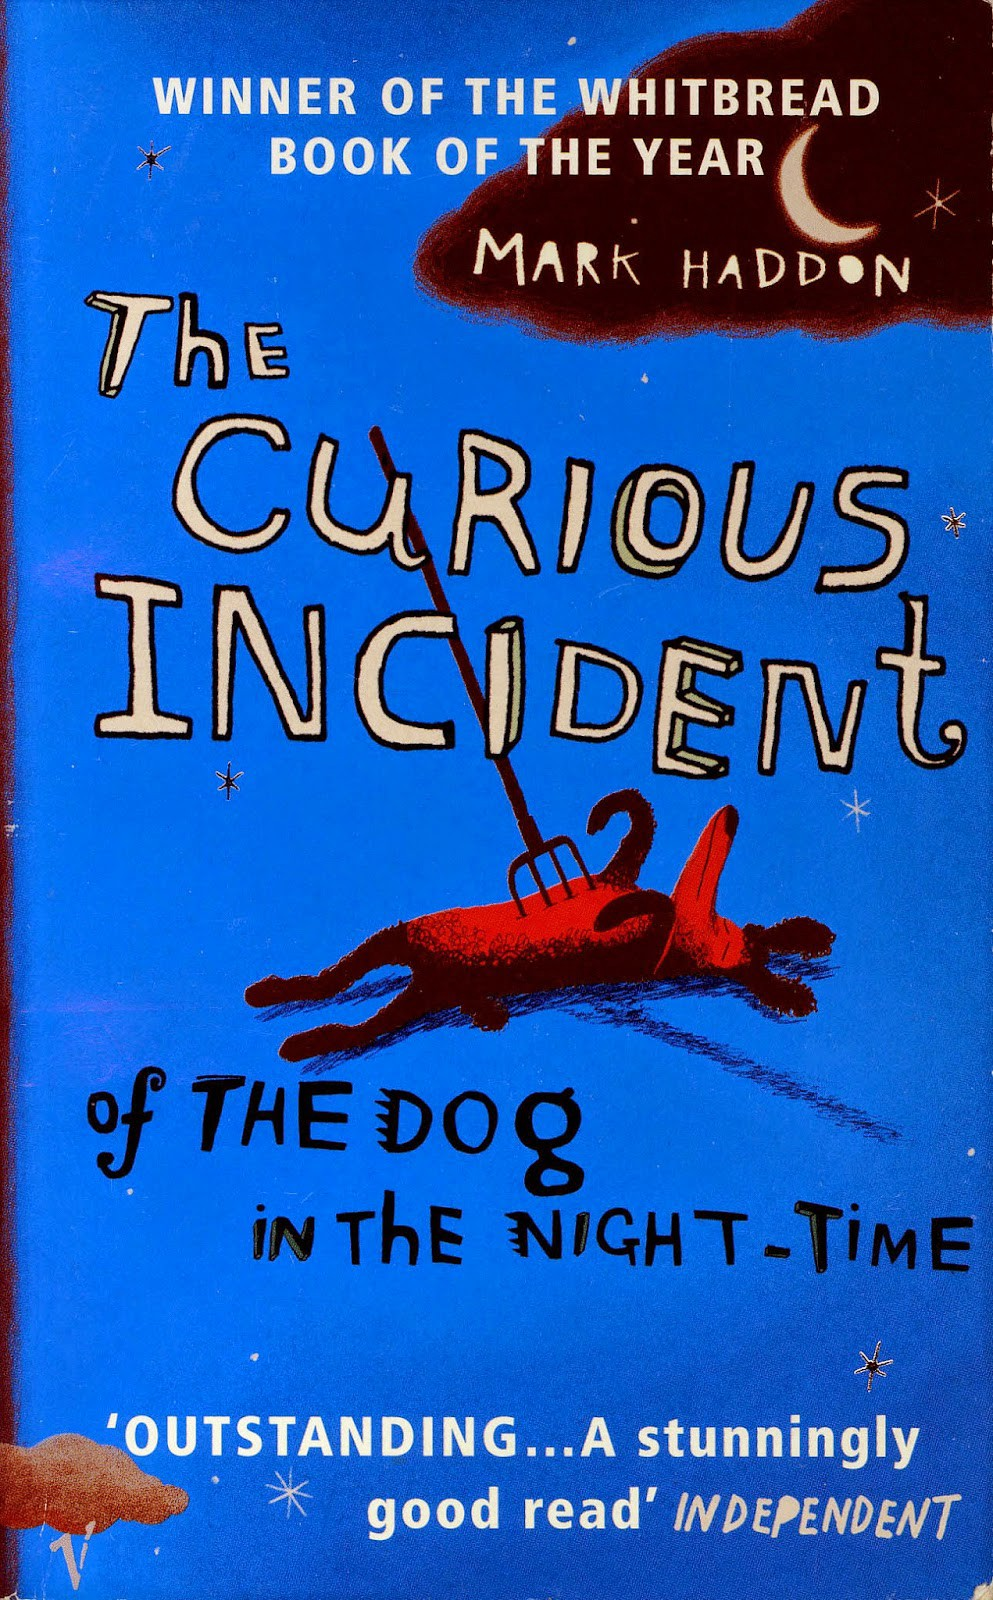 the curious incident of the dog in the nighttime essay thesis The curious incident of the dog in the night-time (2003) [1] is an image-laden bildungsroman told from the point of view of teenage narrator christopher boone christopher is a young man dealing with his parents' failing relationships, mysterious gaps in his knowledge of his family history, and the recent murder of wellington, a neighbor's poodle.